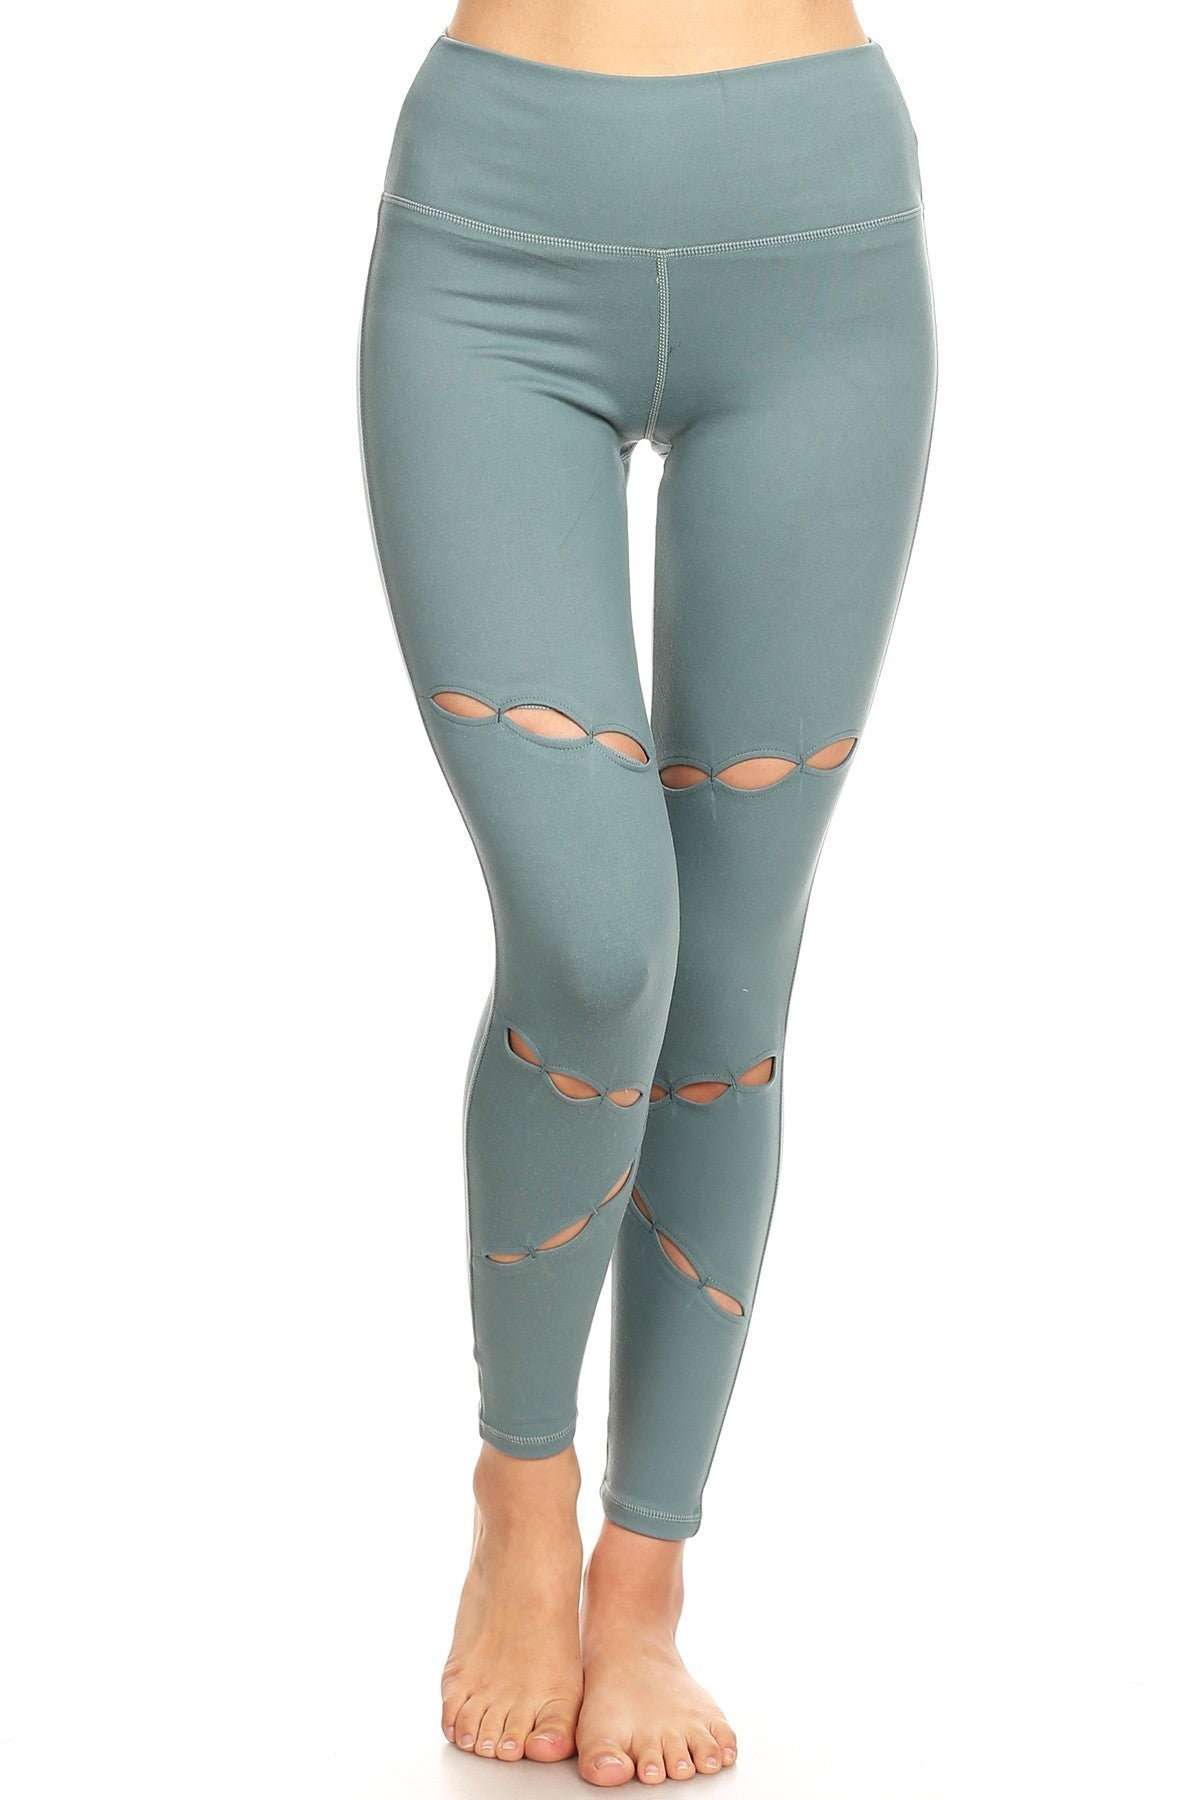 Women's ultra soft cut out Legging - moove4fitness